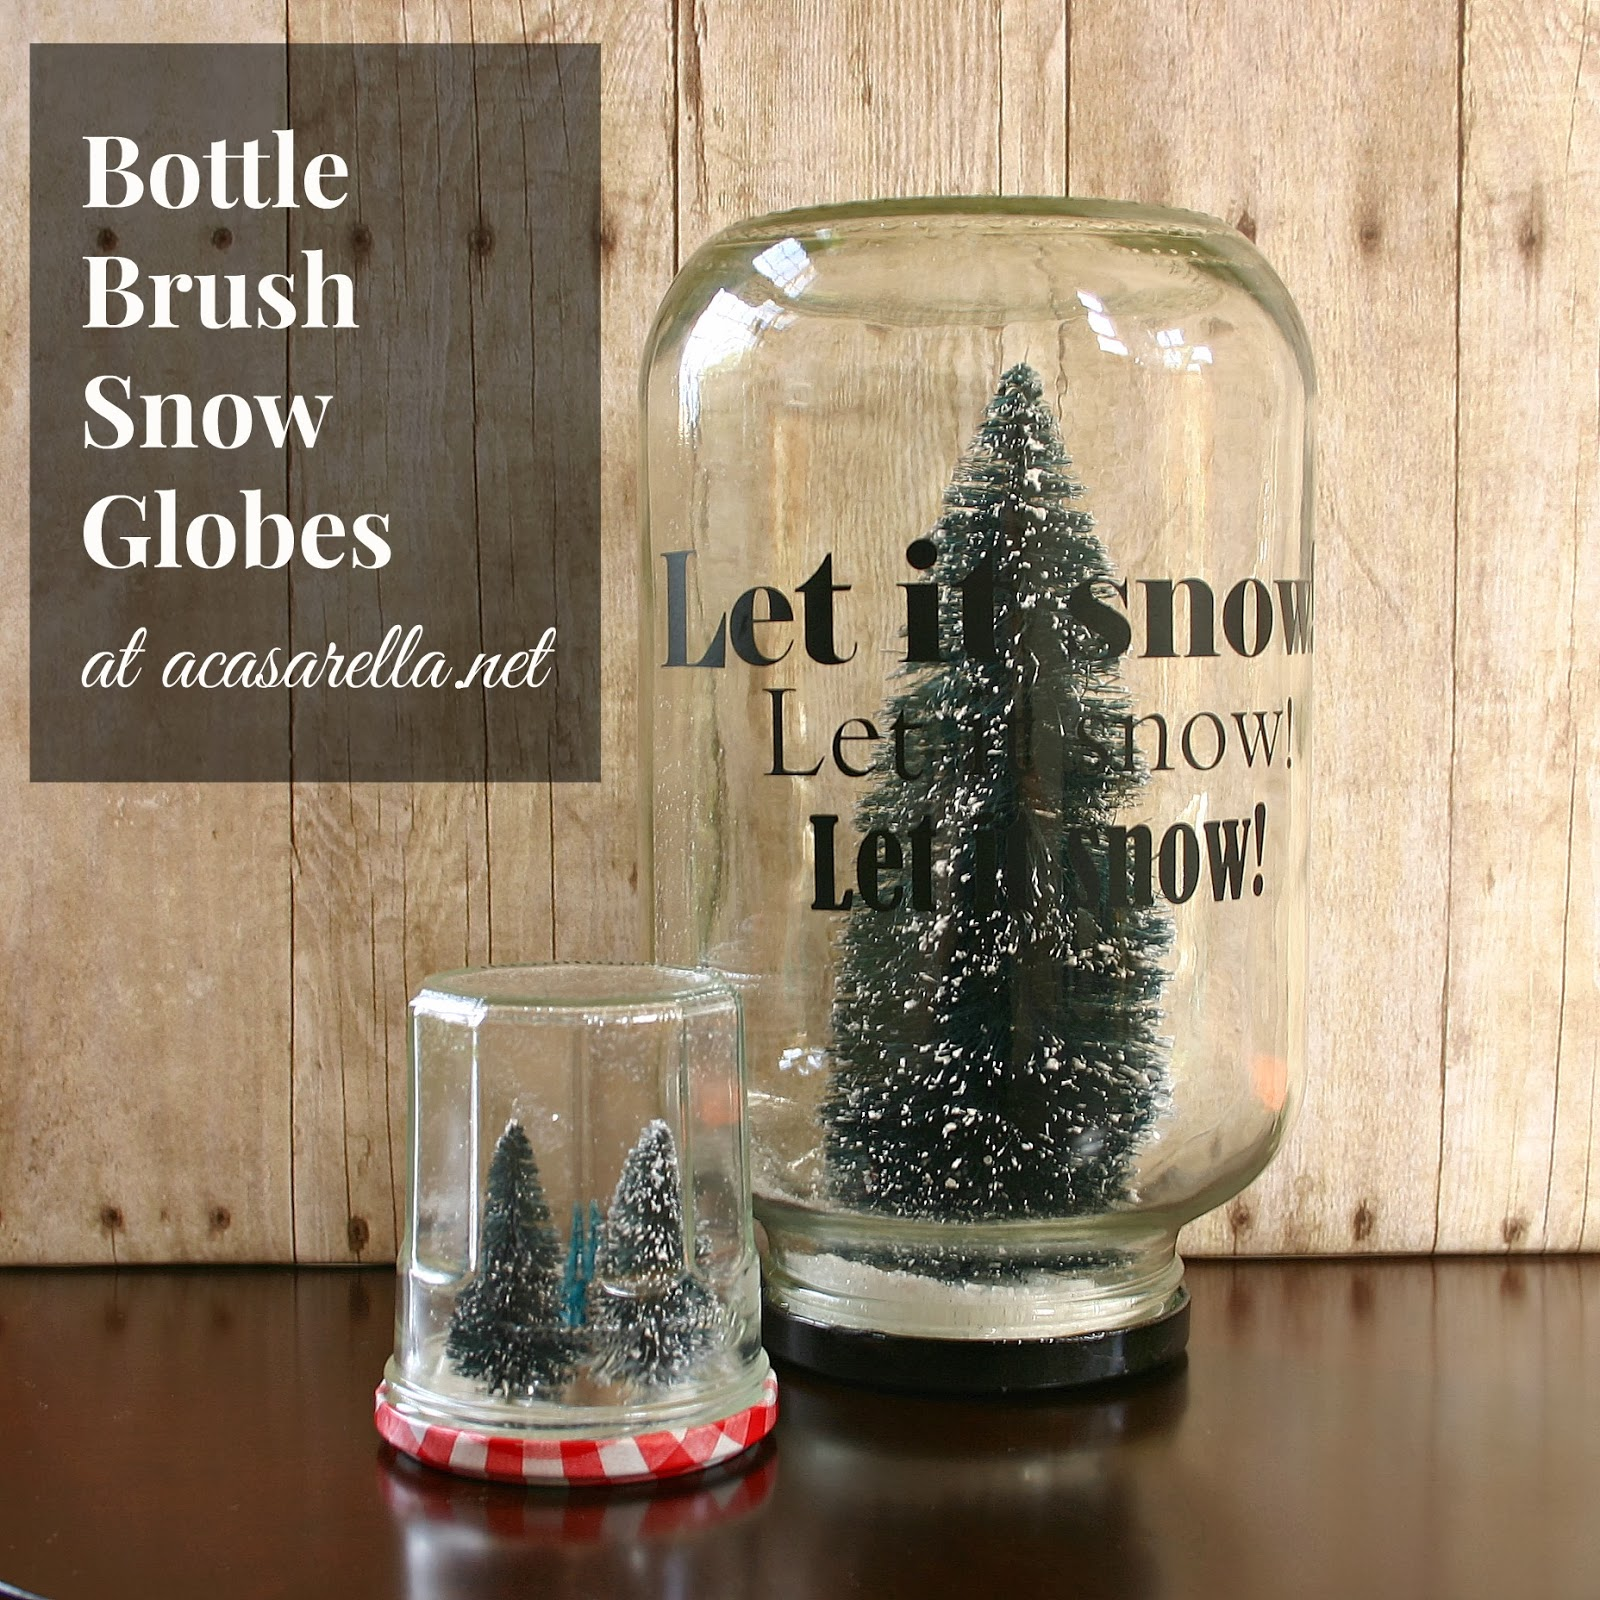 Bottle Brush Snow Globe A Casarella